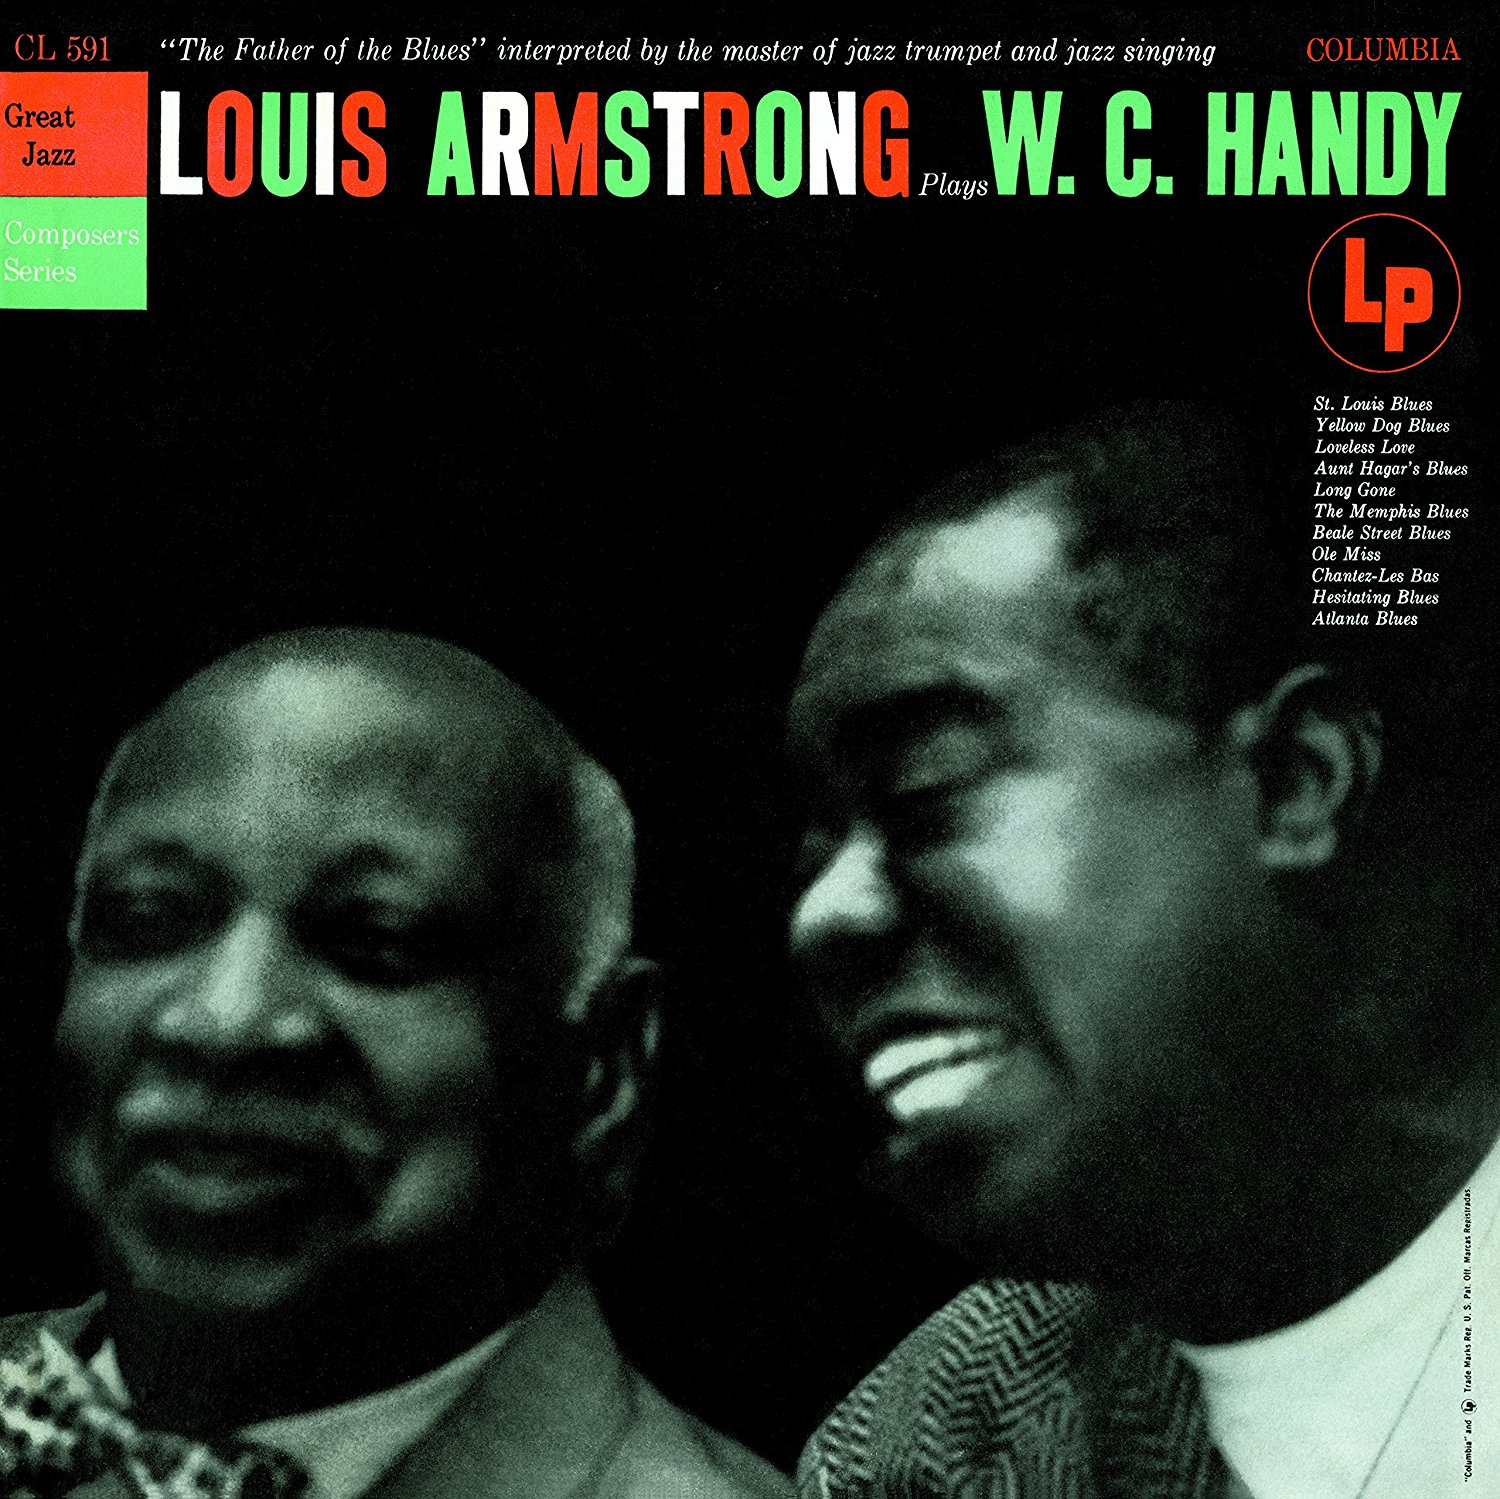 Louis Armstrong - Plays W.C. Handy (Vinyl, LP)